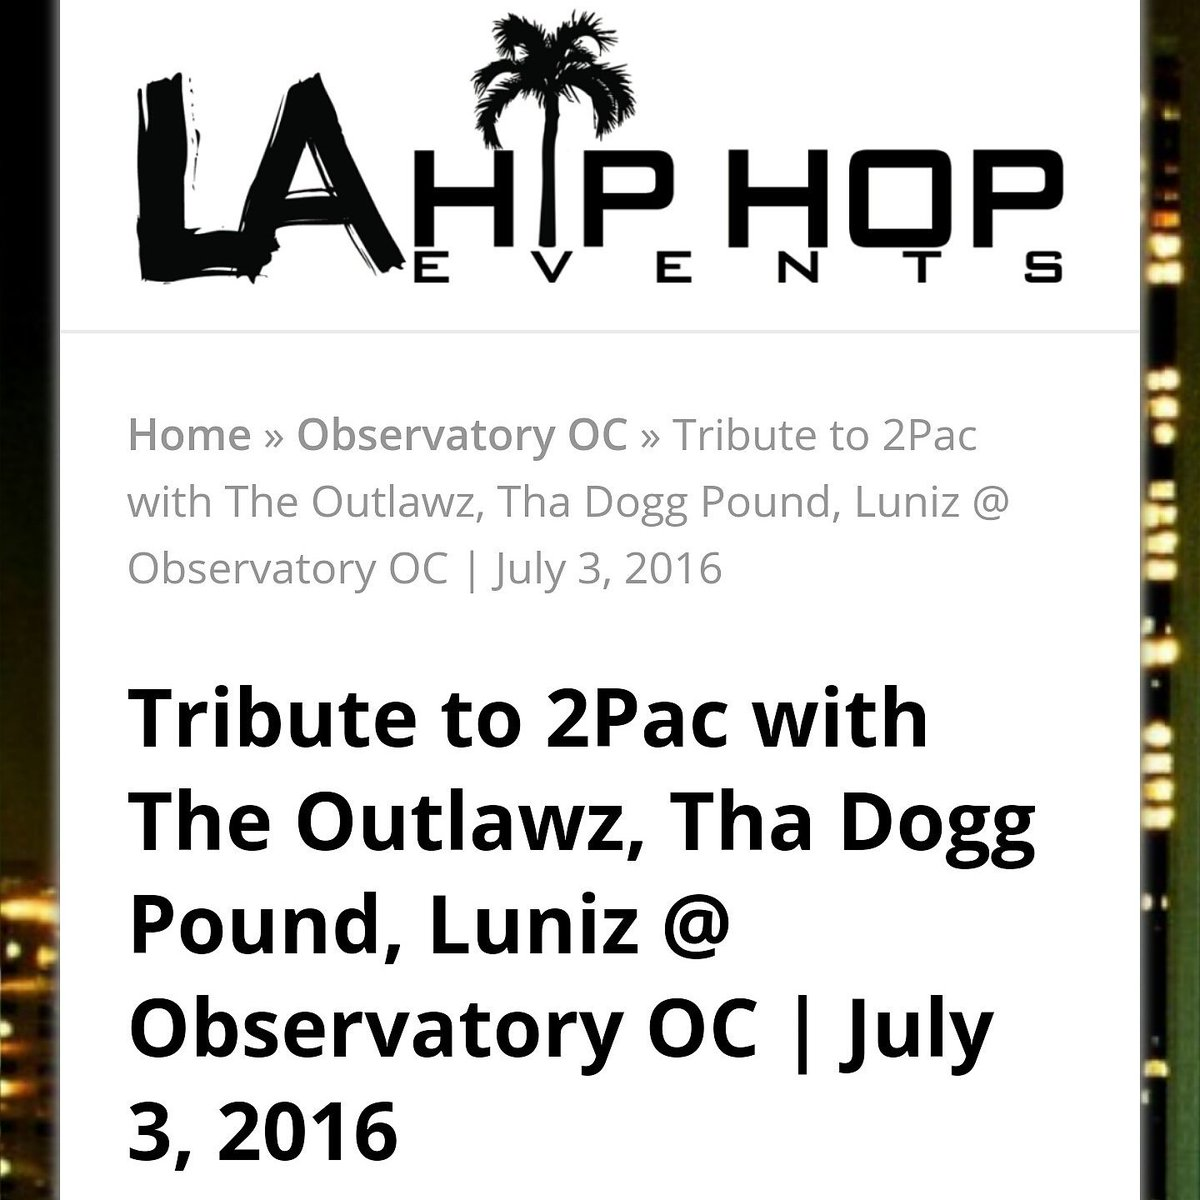 If you in the LA area come party wit us July 3 in Santa Ana at the Observatory! #Outlawz #DoggPound #Luniz #Concert https://t.co/3JSYjOby2m